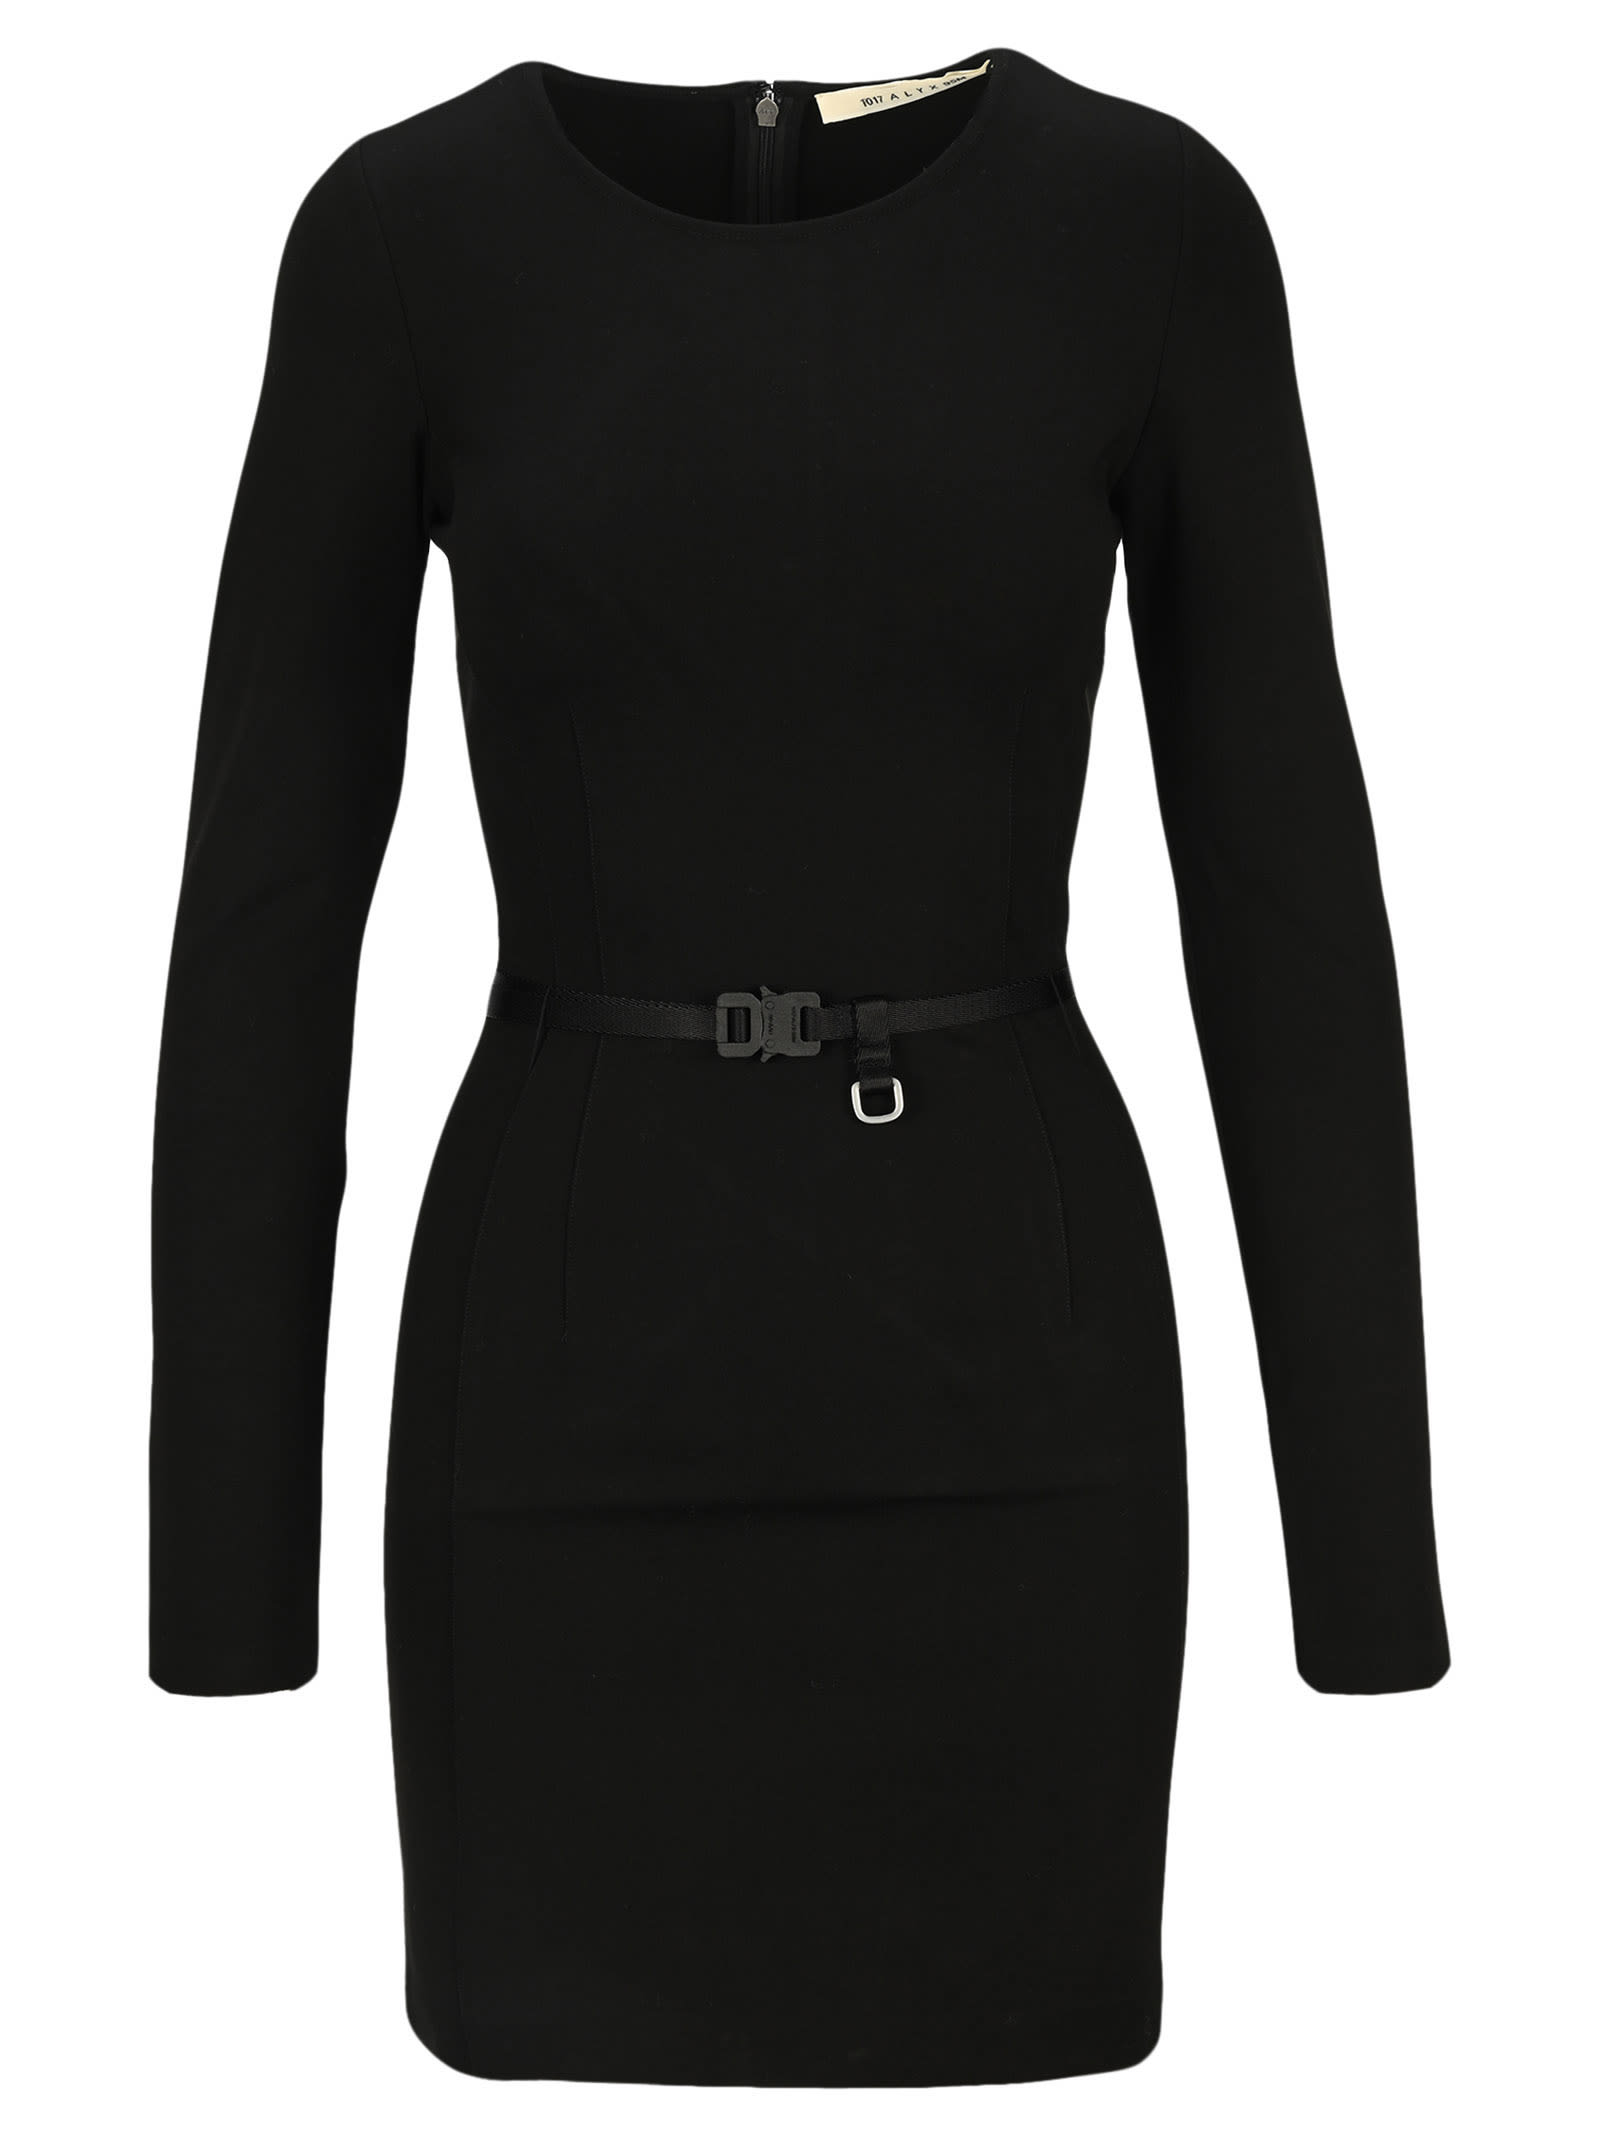 Buy 1017 ALYX 9SM Alyx Belted Mini Dress online, shop 1017 ALYX 9SM with free shipping